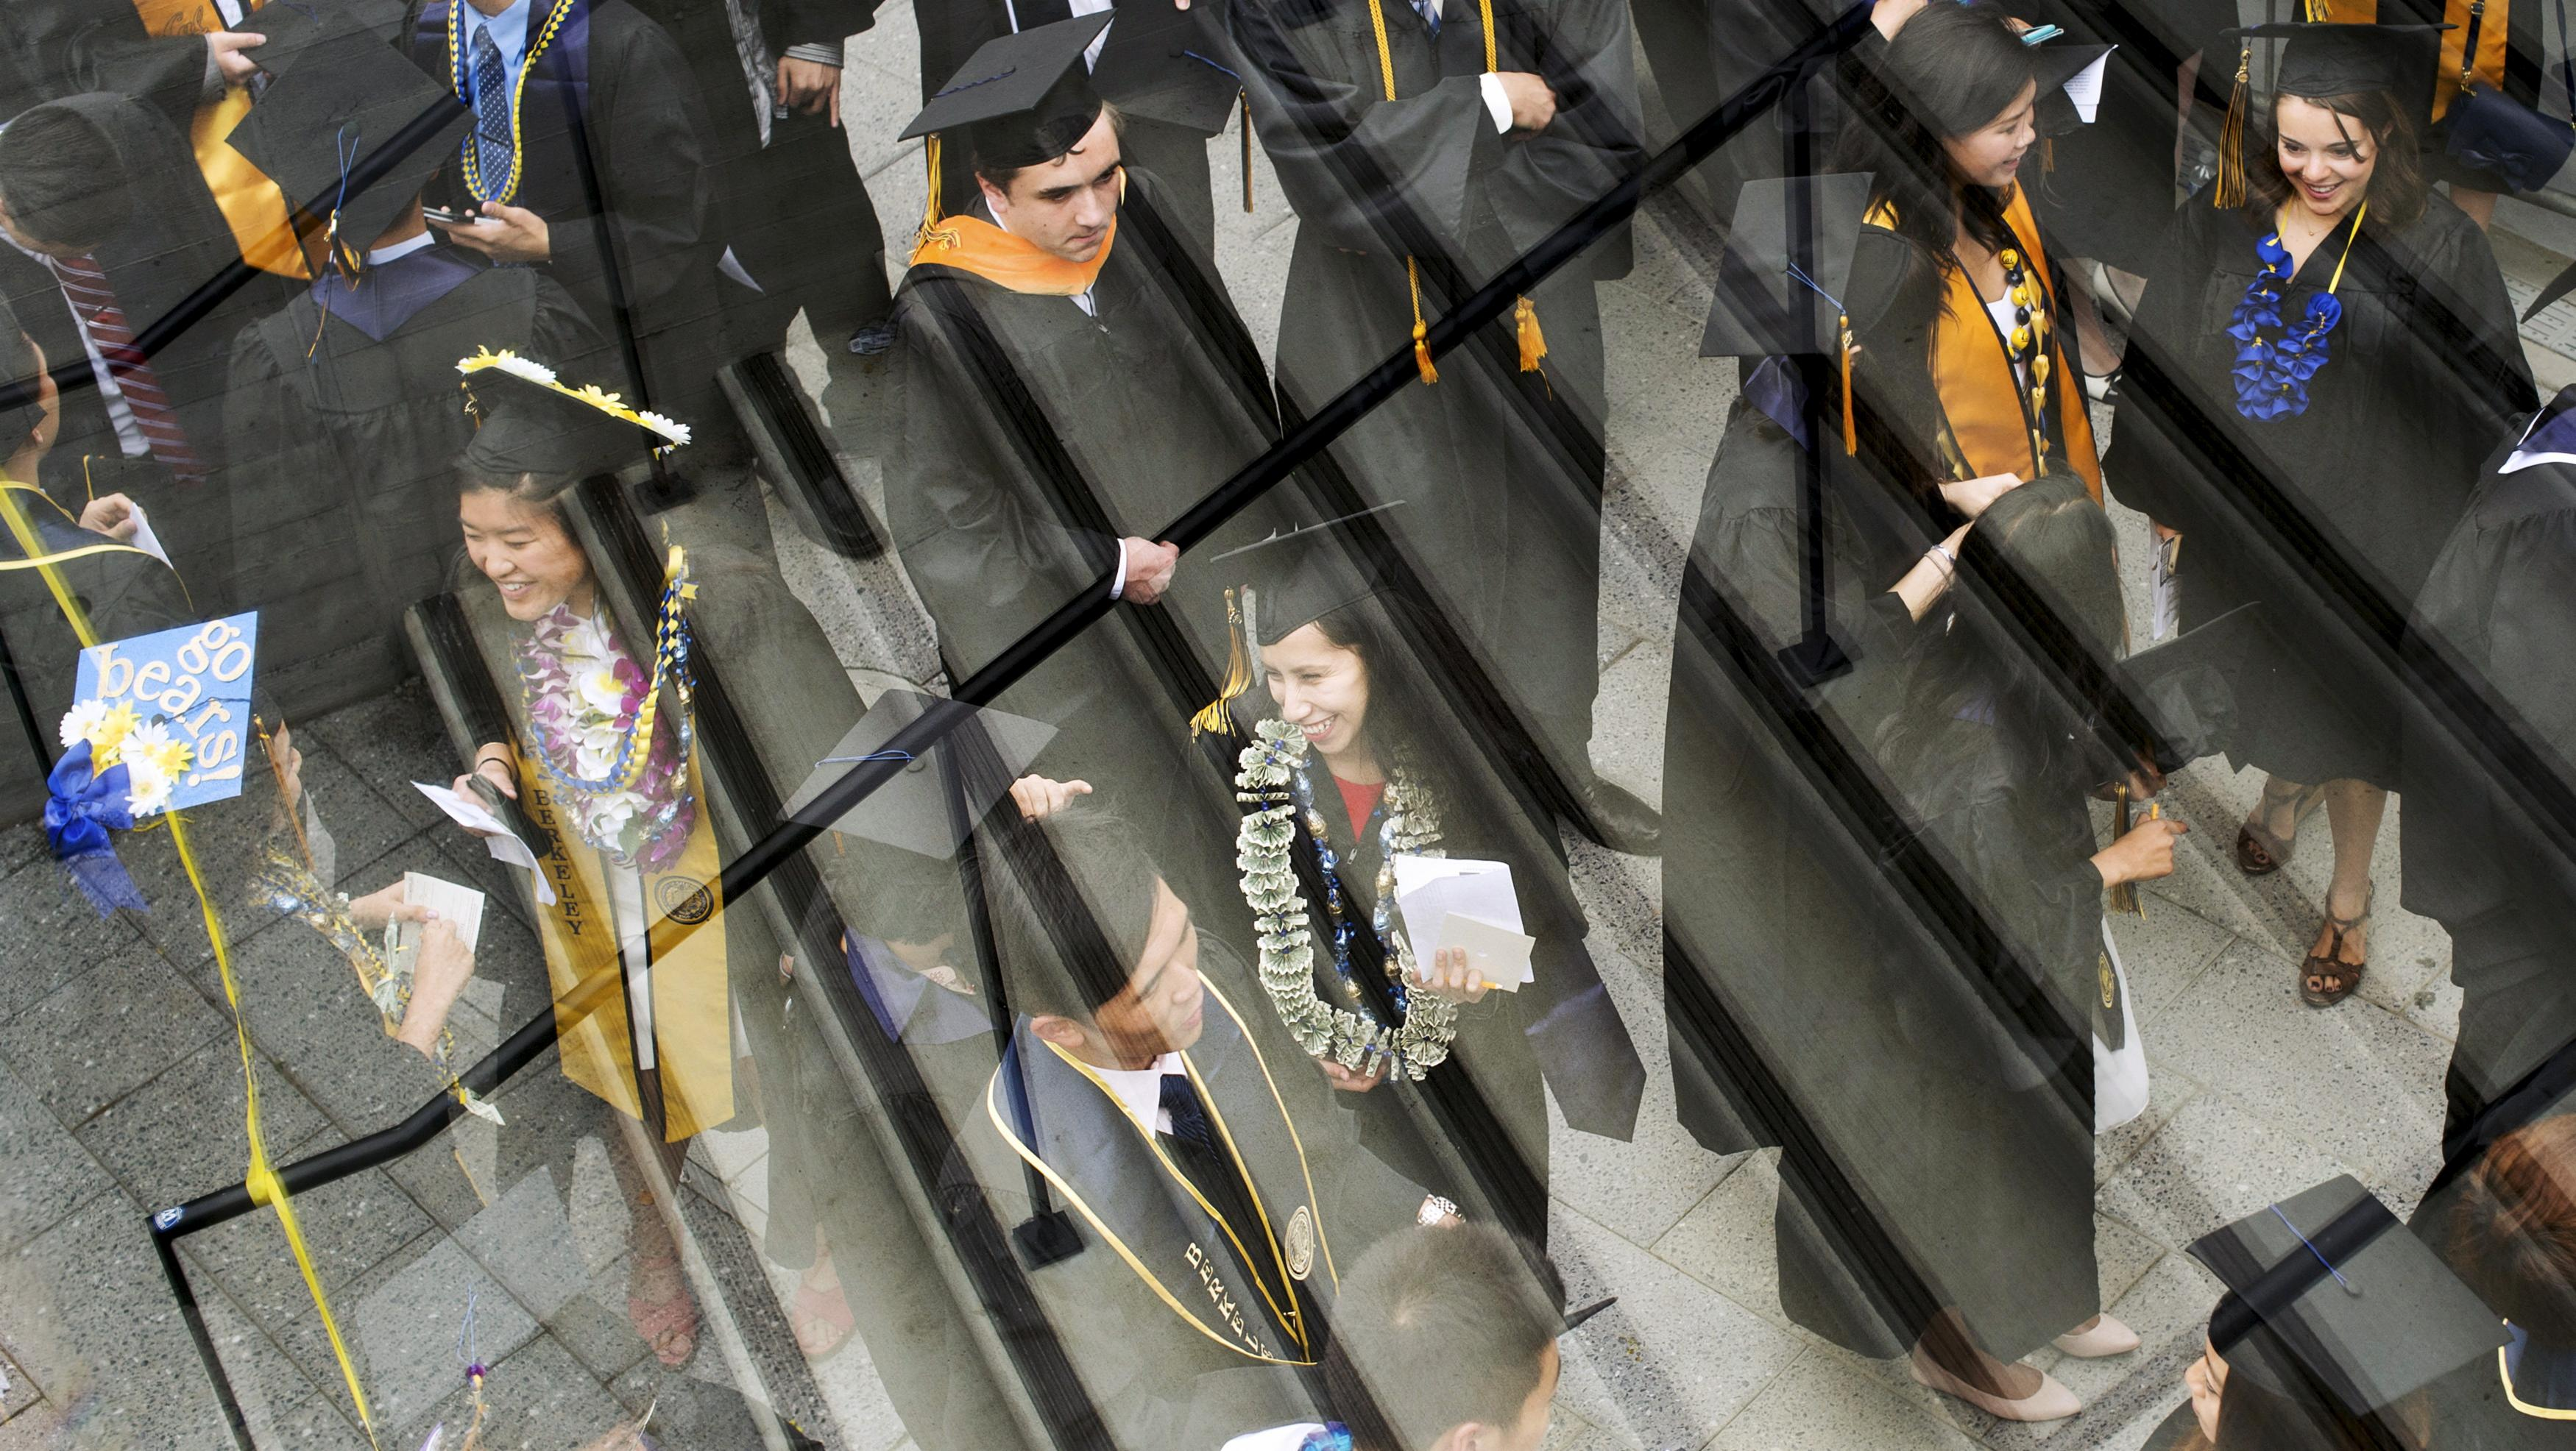 Graduates arrive for commencement at the University of California, Berkeley